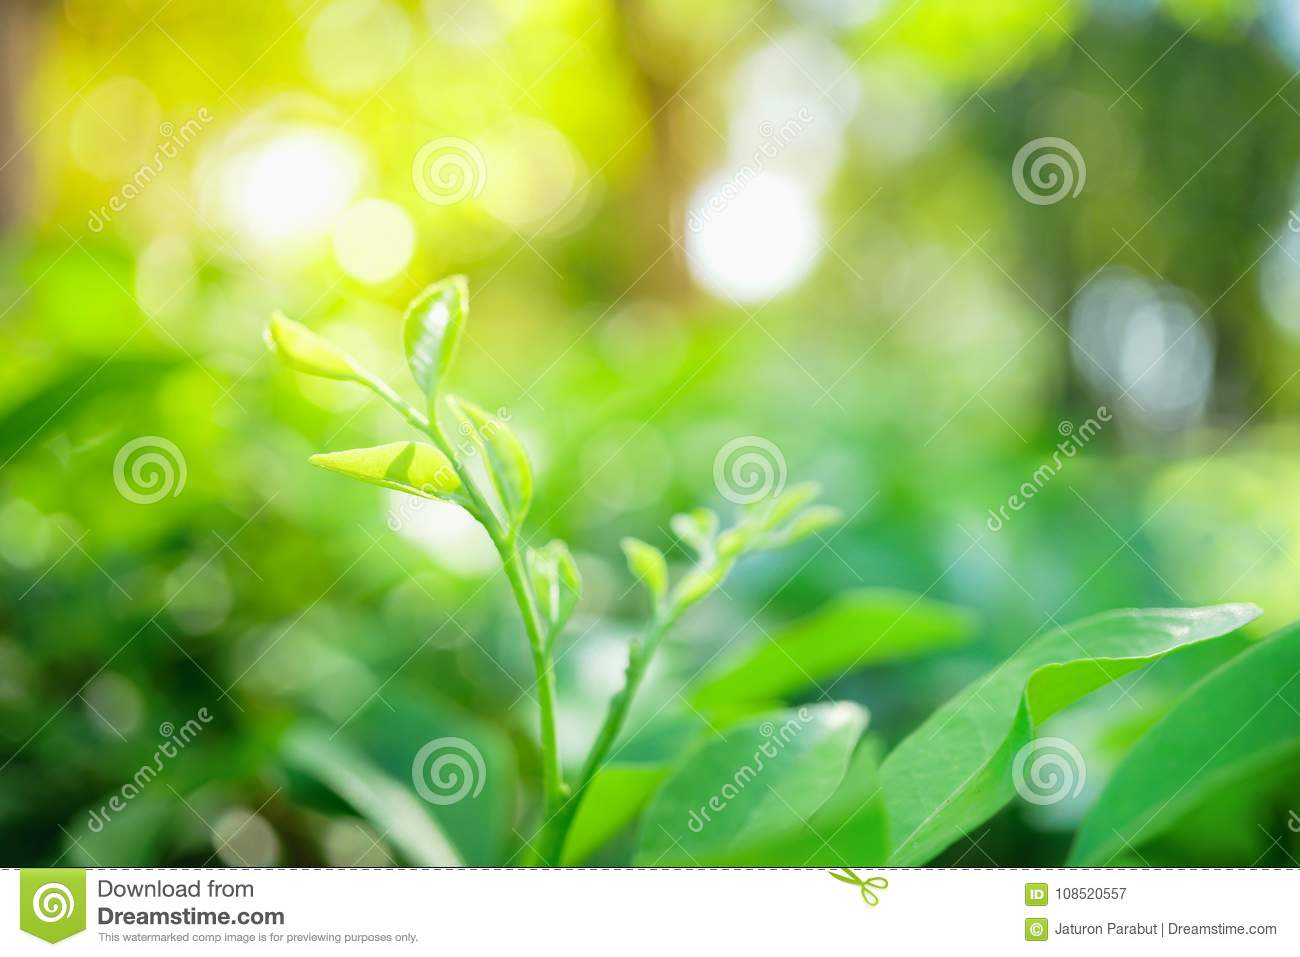 Abstract blurred close up nature of green leaf, natural green pl